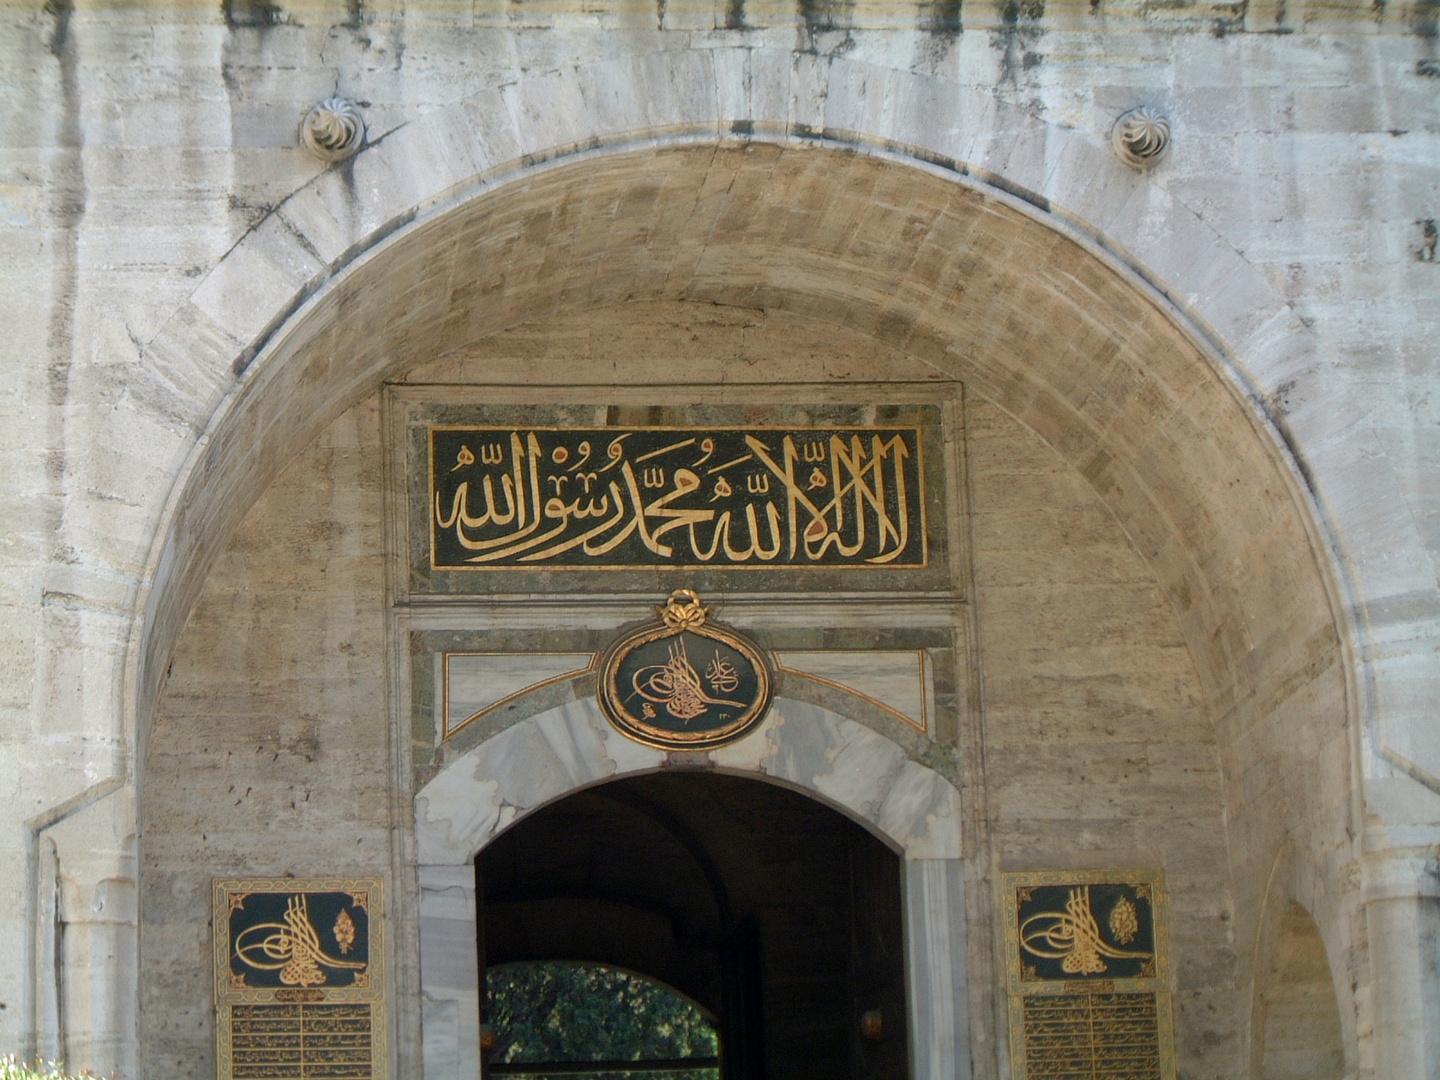 The main Imperial Gate Bab-i Humayun to Topkapi Palace